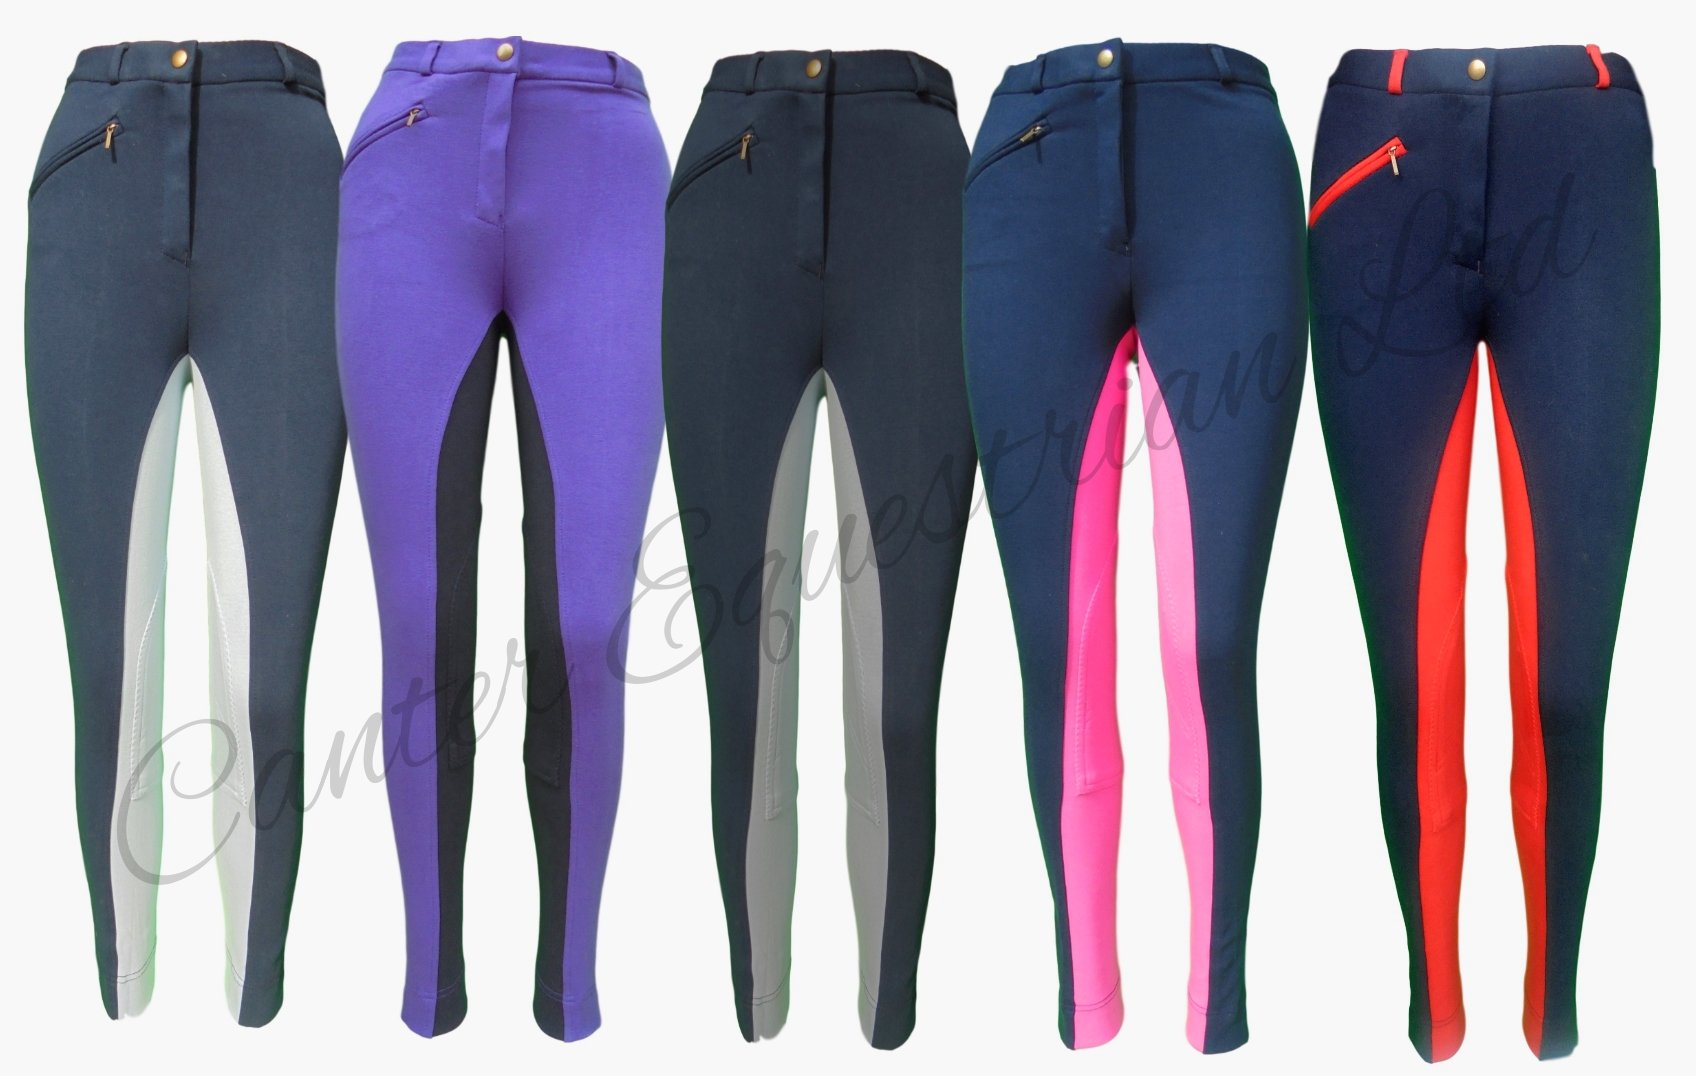 Canter Two Tone Childrens//Kids Horse Riding Jodhpurs//Breeches from 20 to 30 Waist